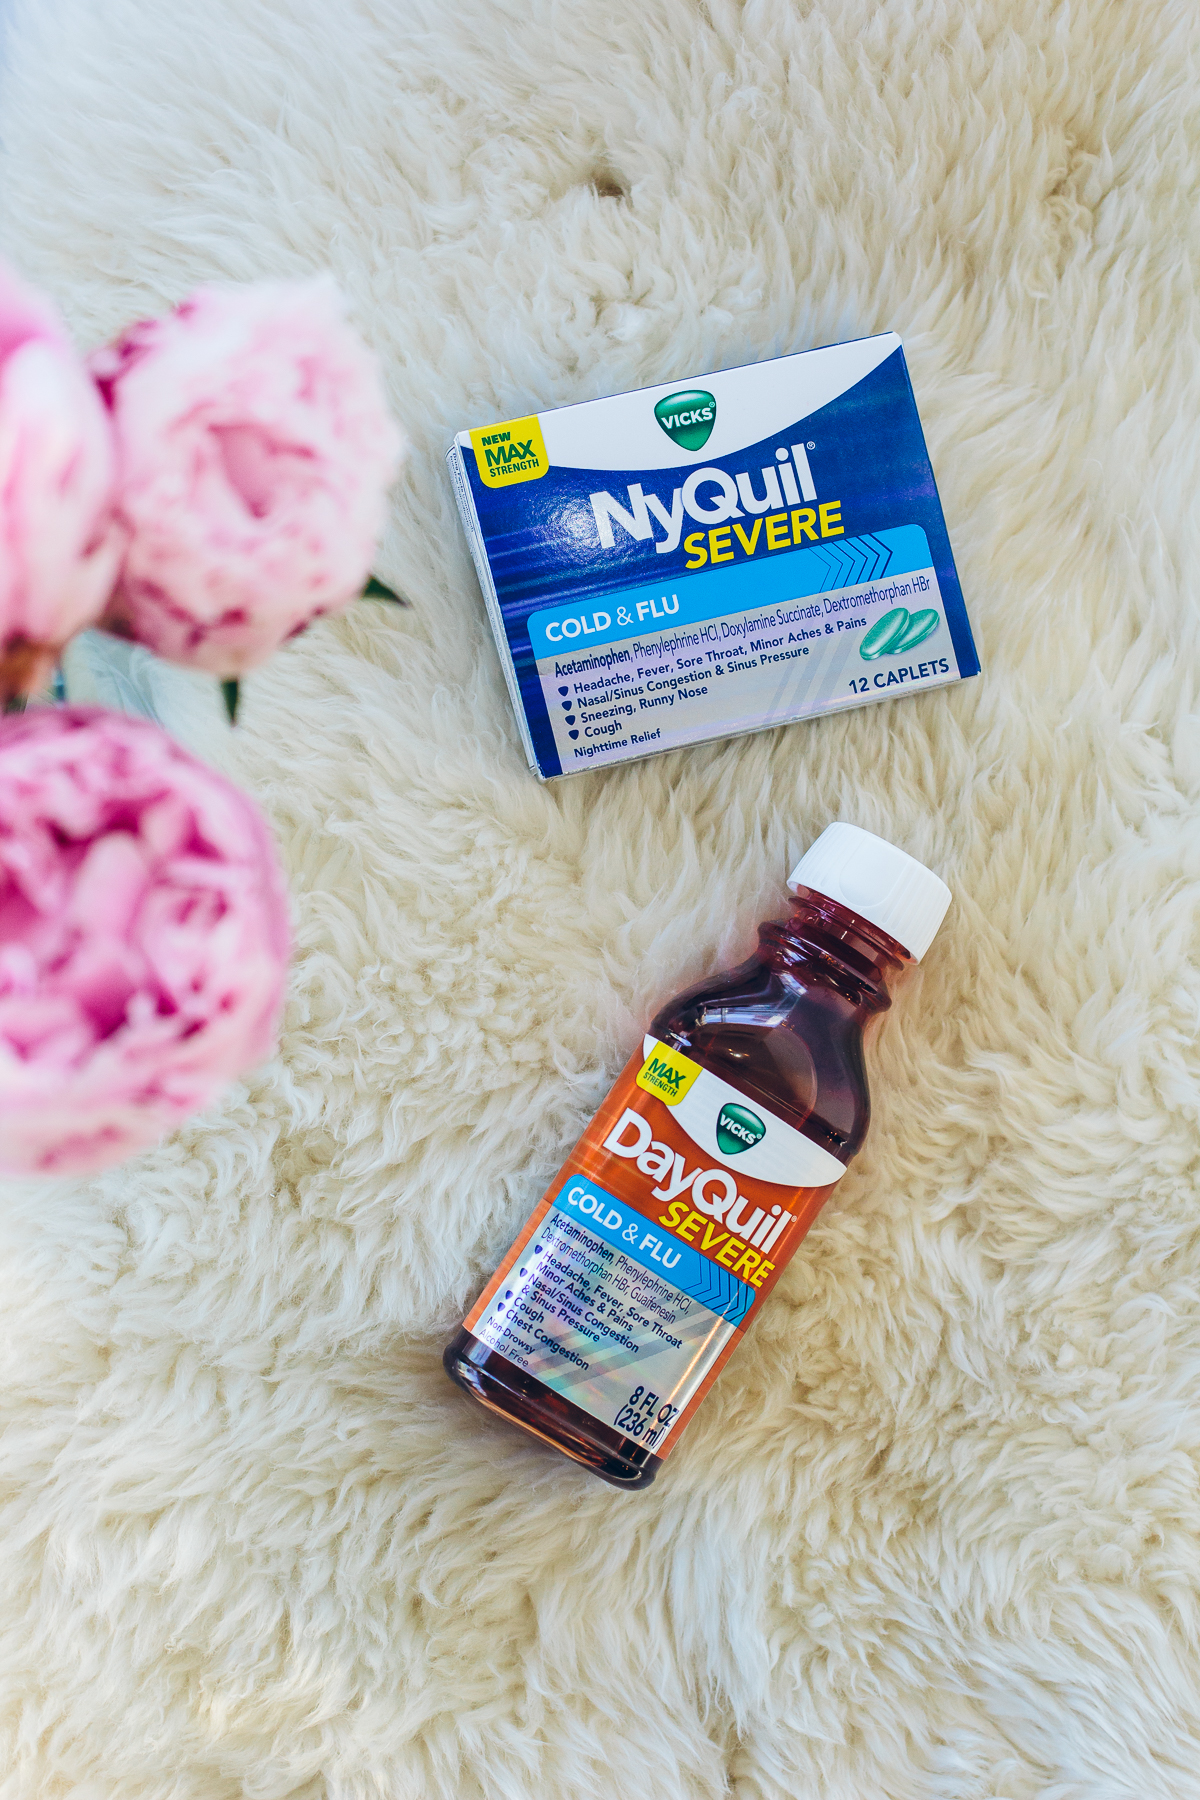 how to stay healthy during winter, Vicks DayQuil Severe/NyQuil Severe — via @TheFoxandShe